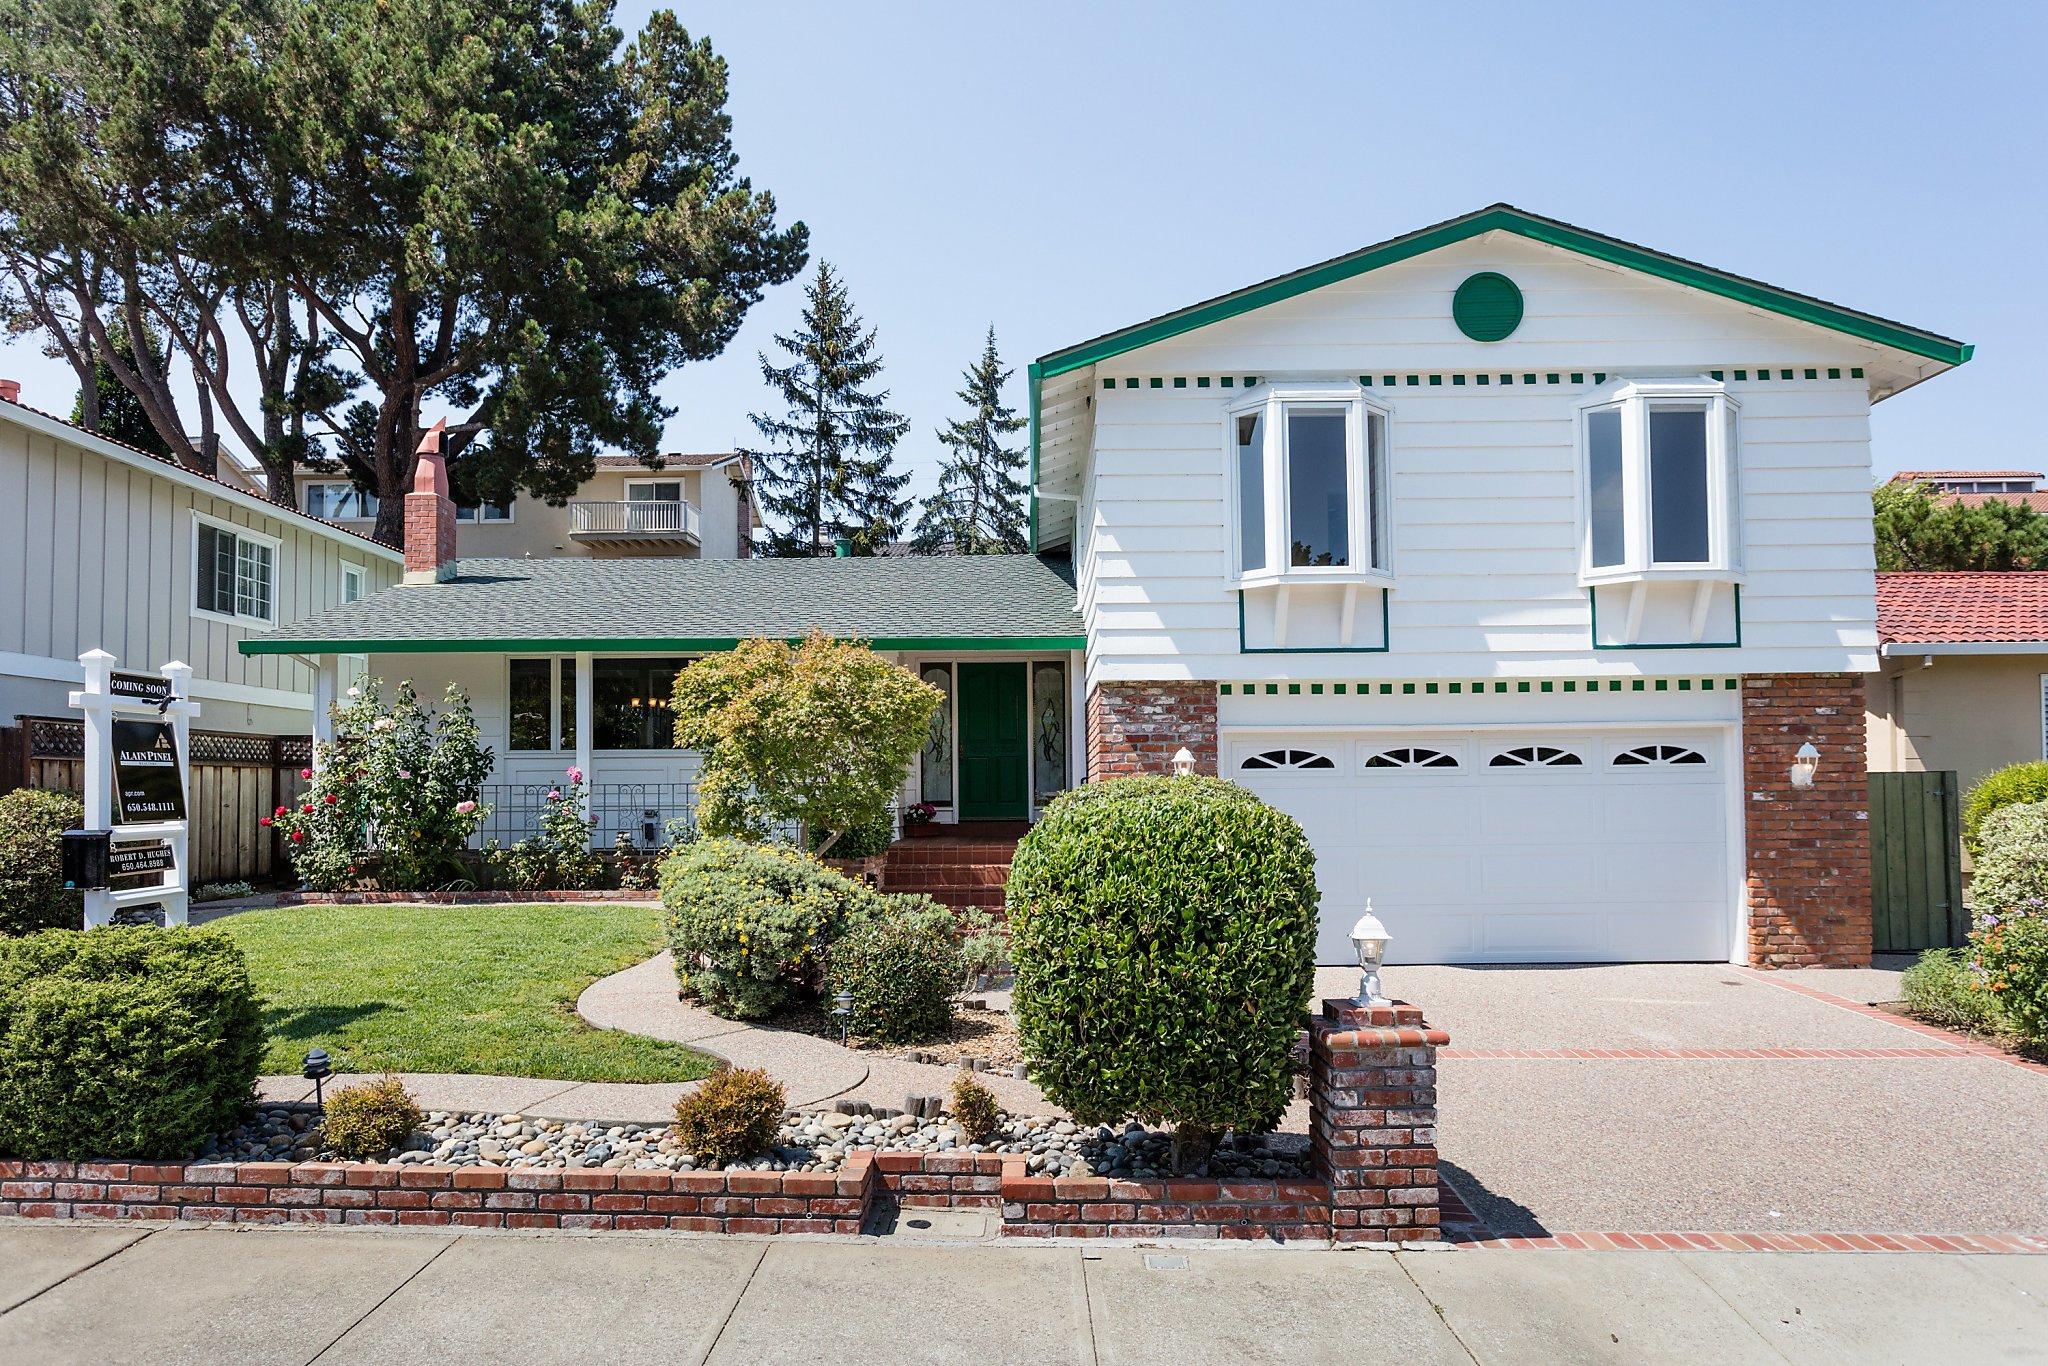 Millbrae Home On The Market For First Time Since 1966